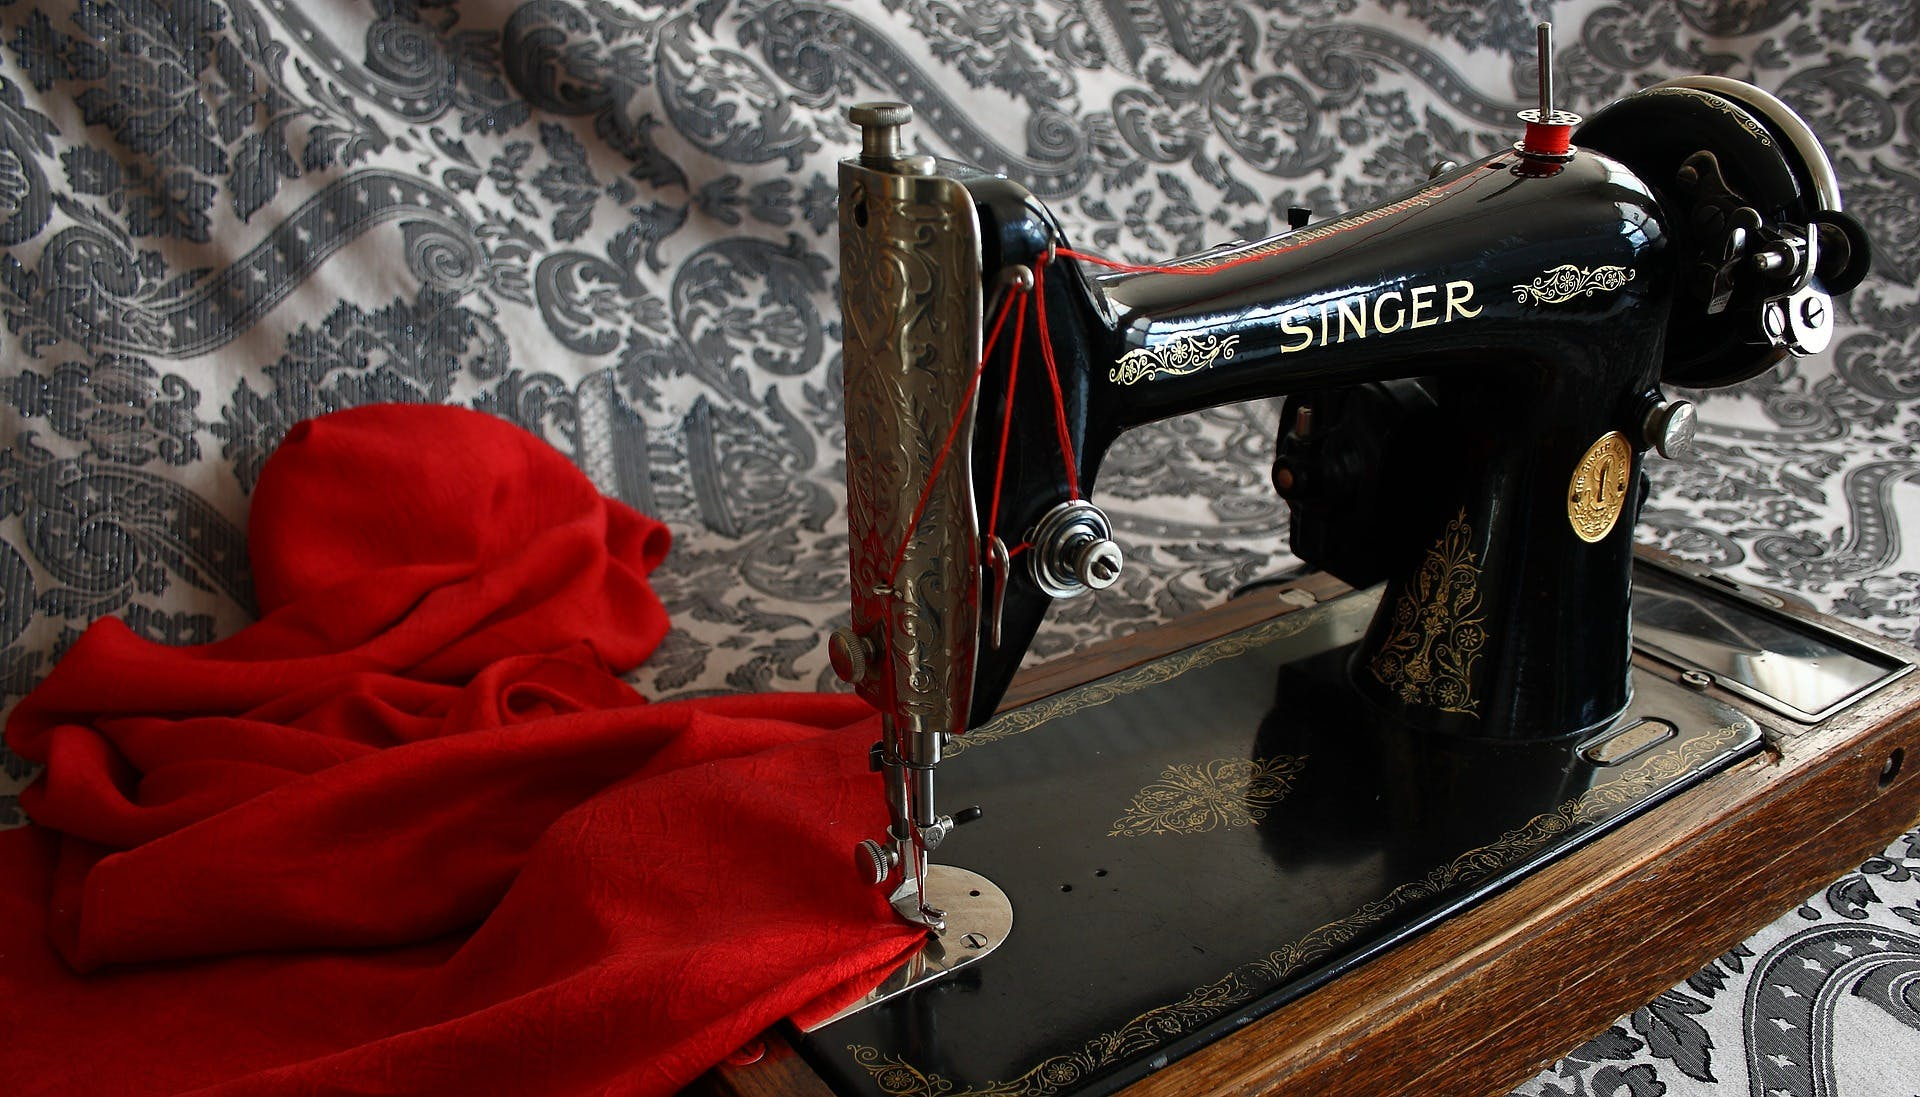 A Singer sewing machine